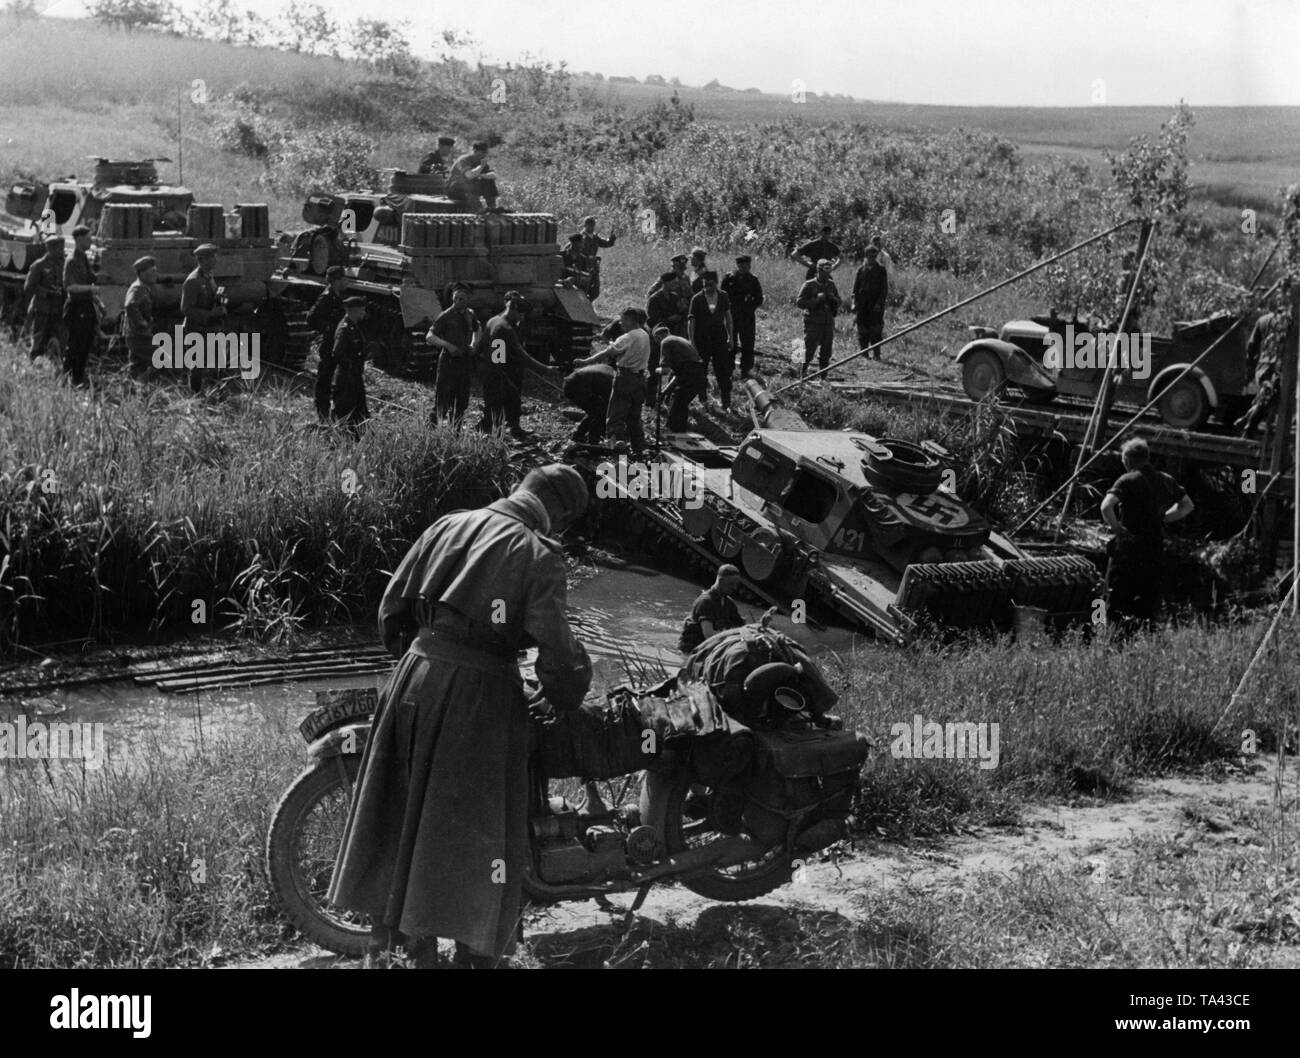 Grunt Black and White Stock Photos & Images - Alamy